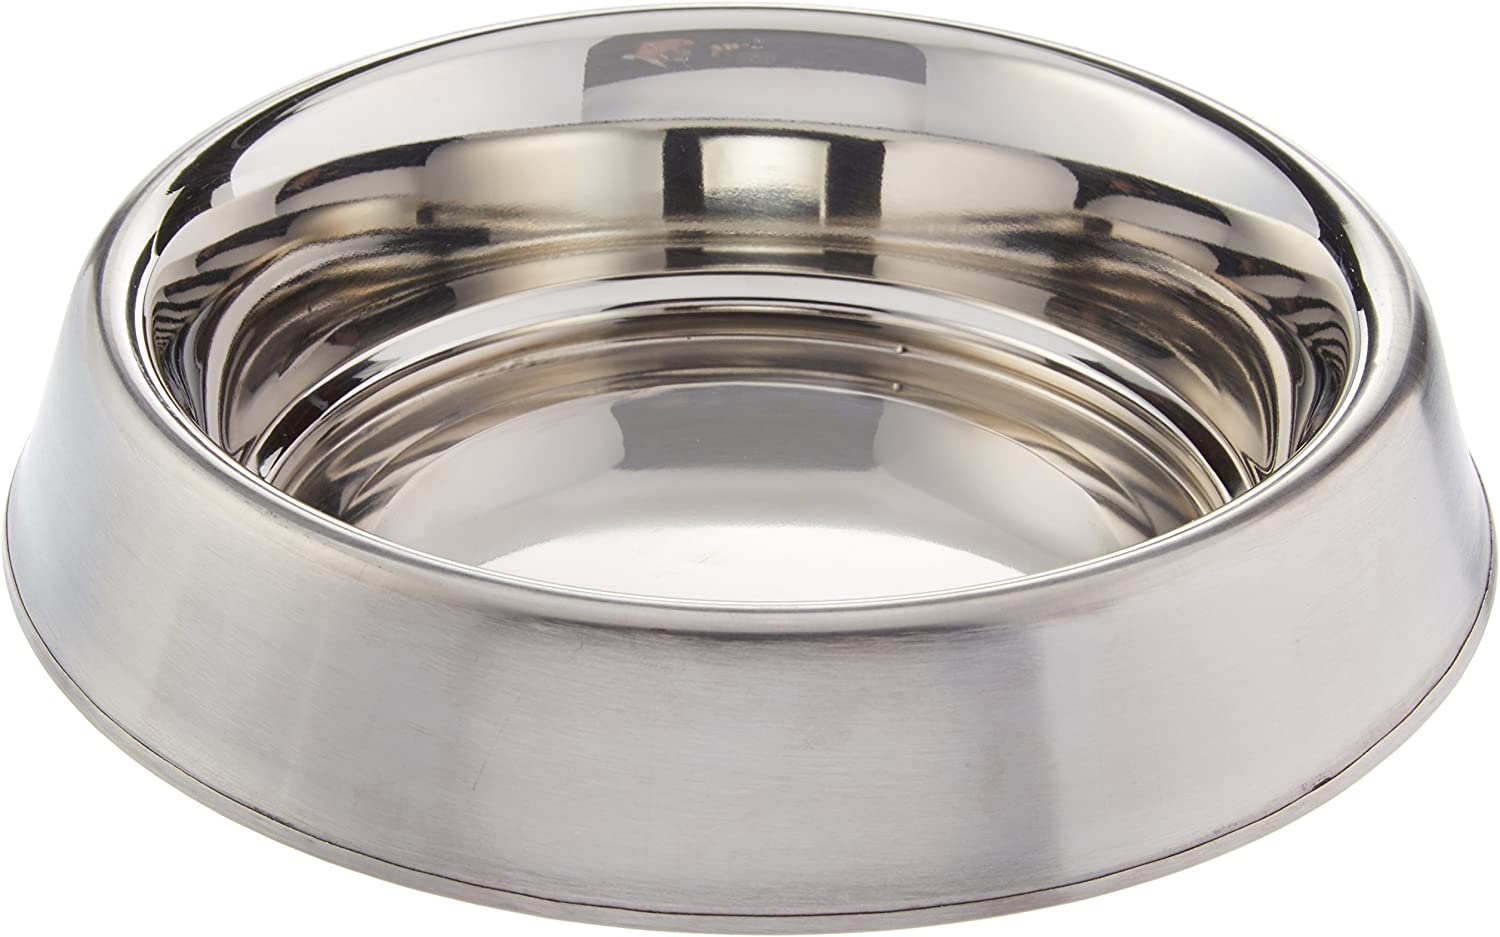 GoGo Pet Products Stainless Steel AntiAnt Pet Dog Bowl, 32Ounce